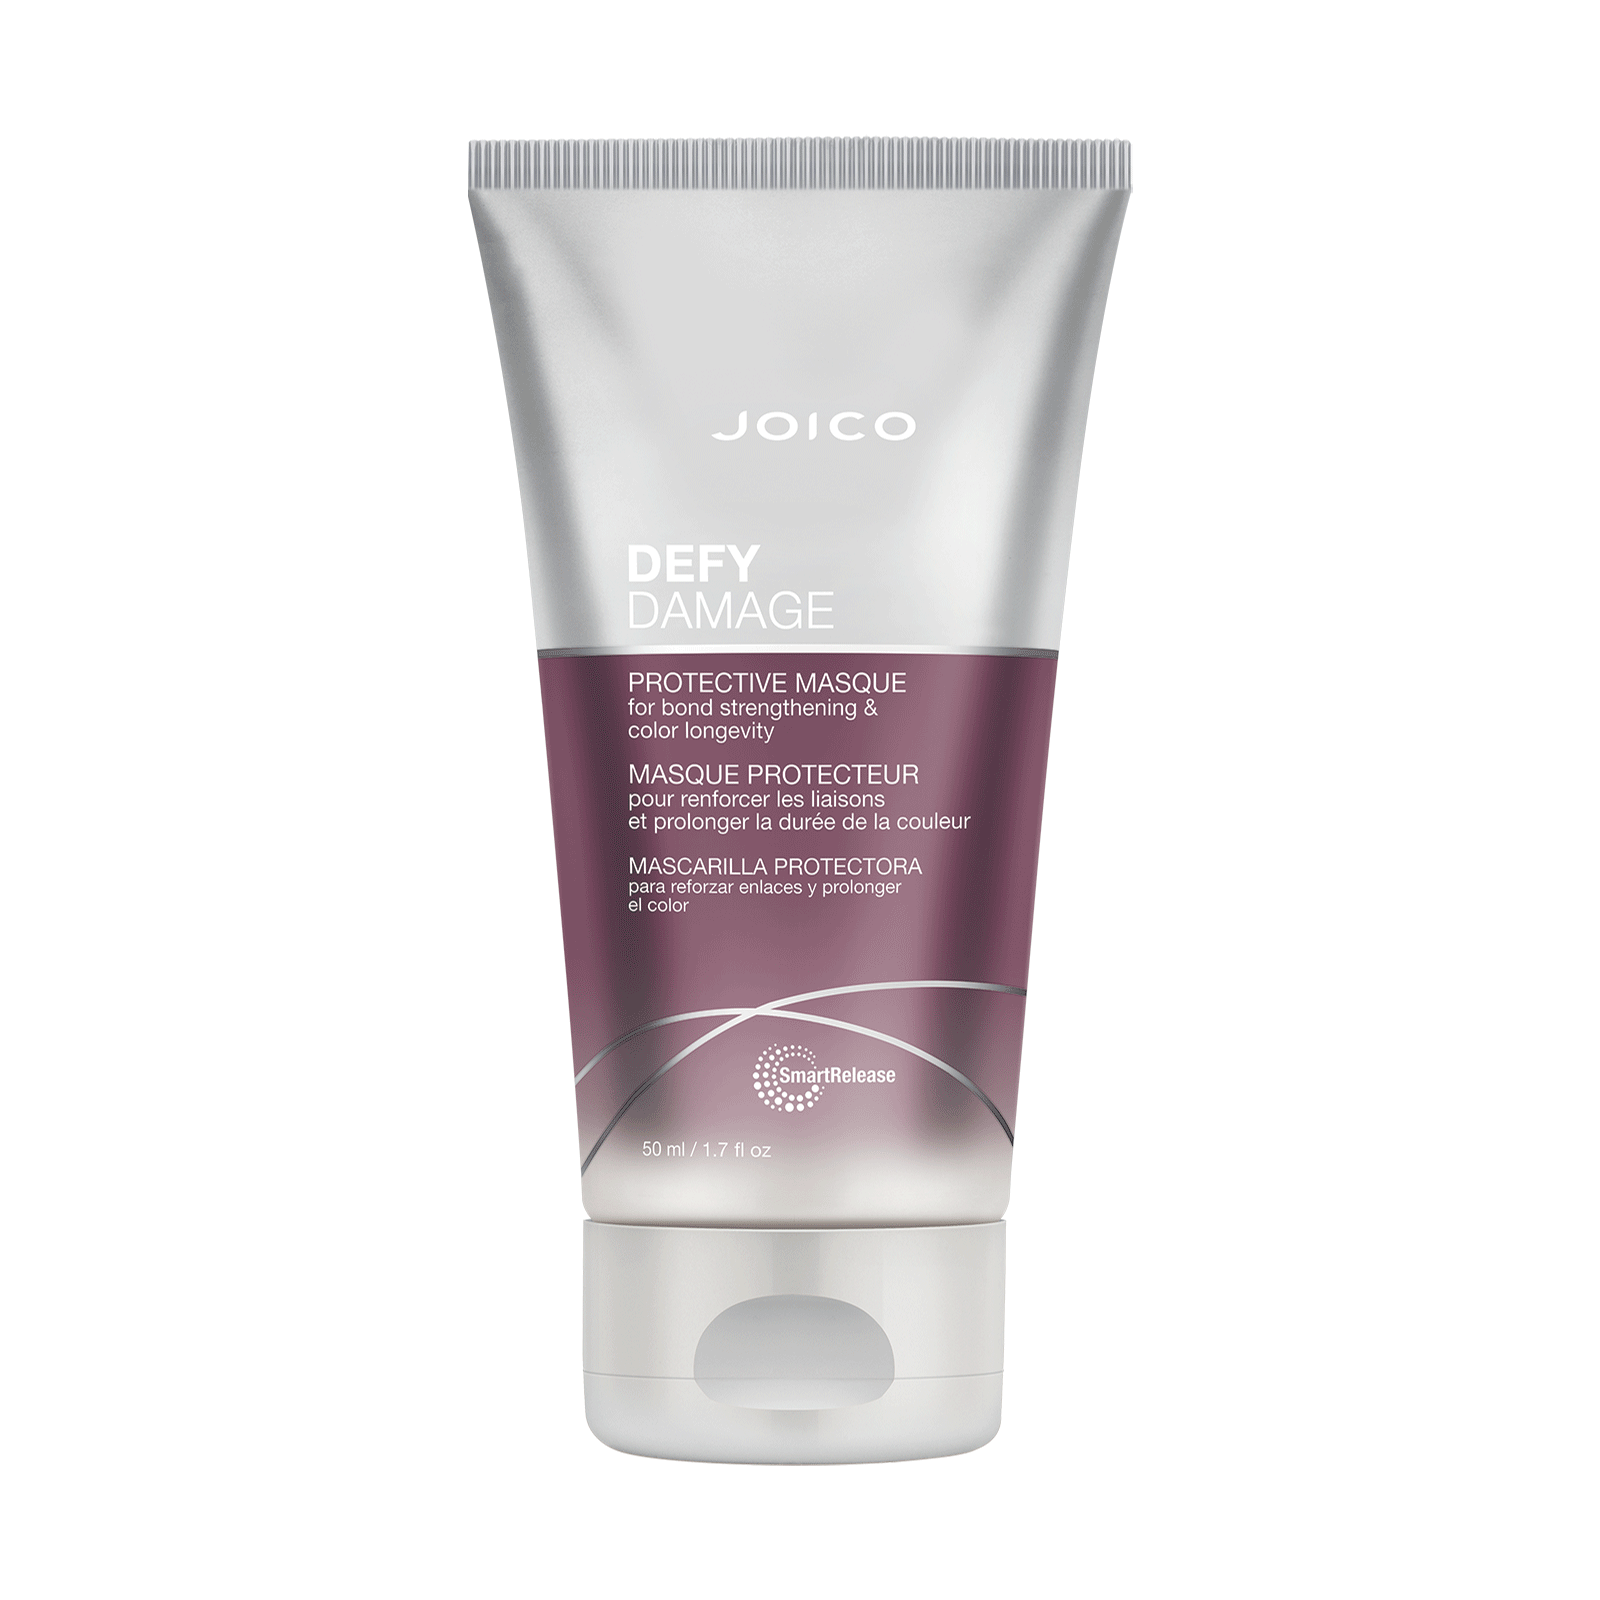 Joico Defy Damage Protective Masque 5.1oz - $27.58